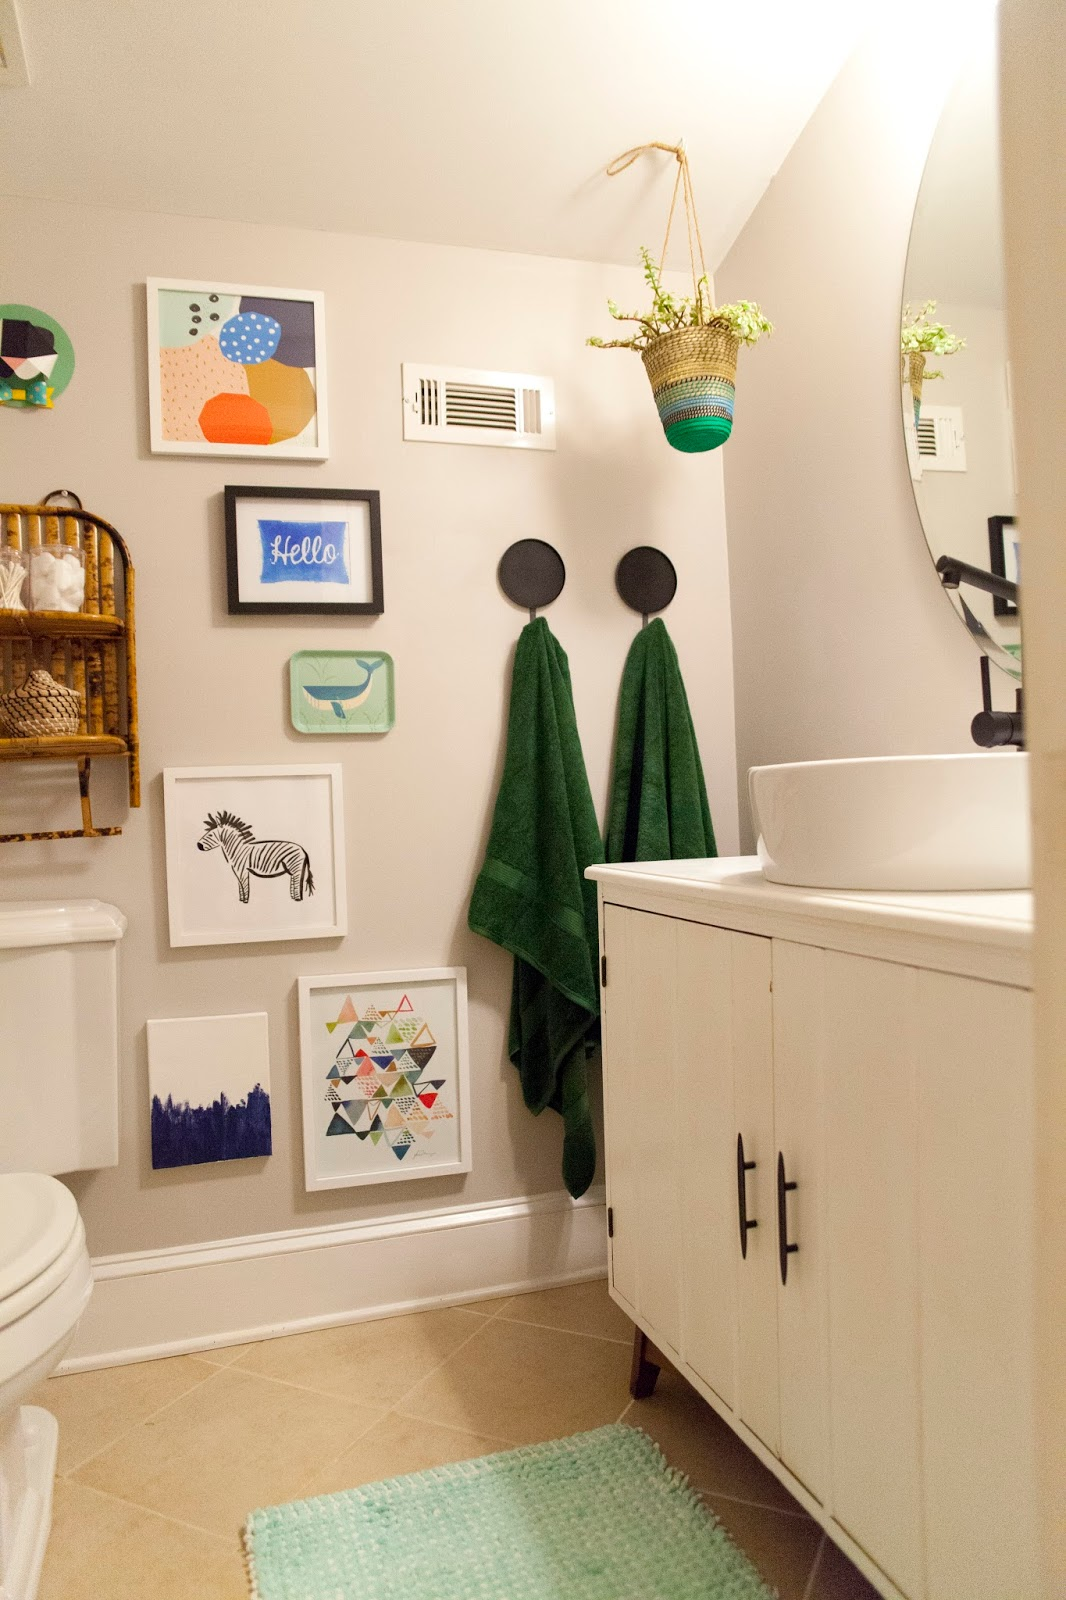 Land of nod bathroom